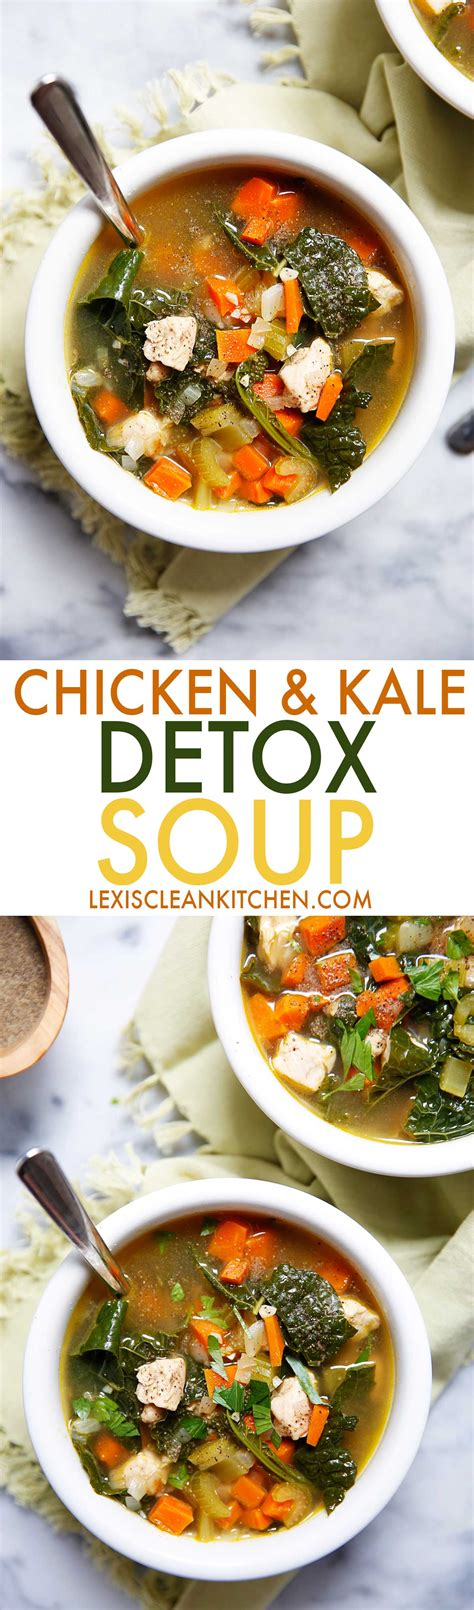 Organic Detox Soup Recipe by Chicken And Kale Detox Soup Recipe